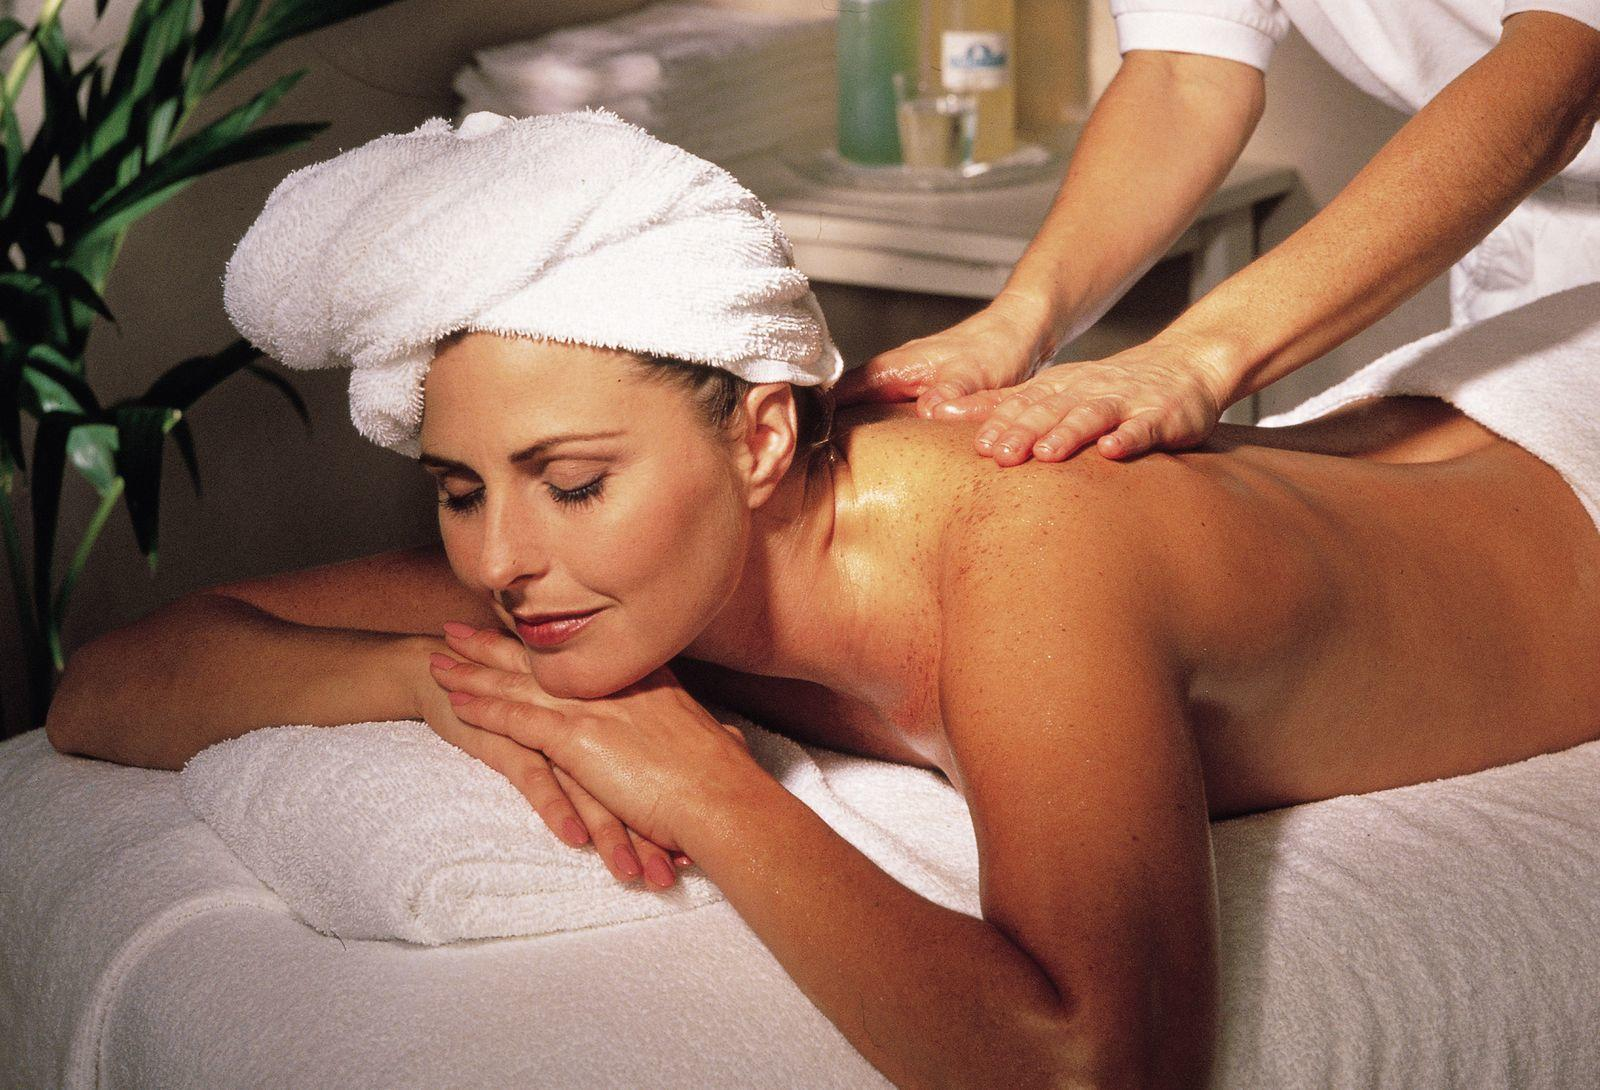 Woman receiving body massage.